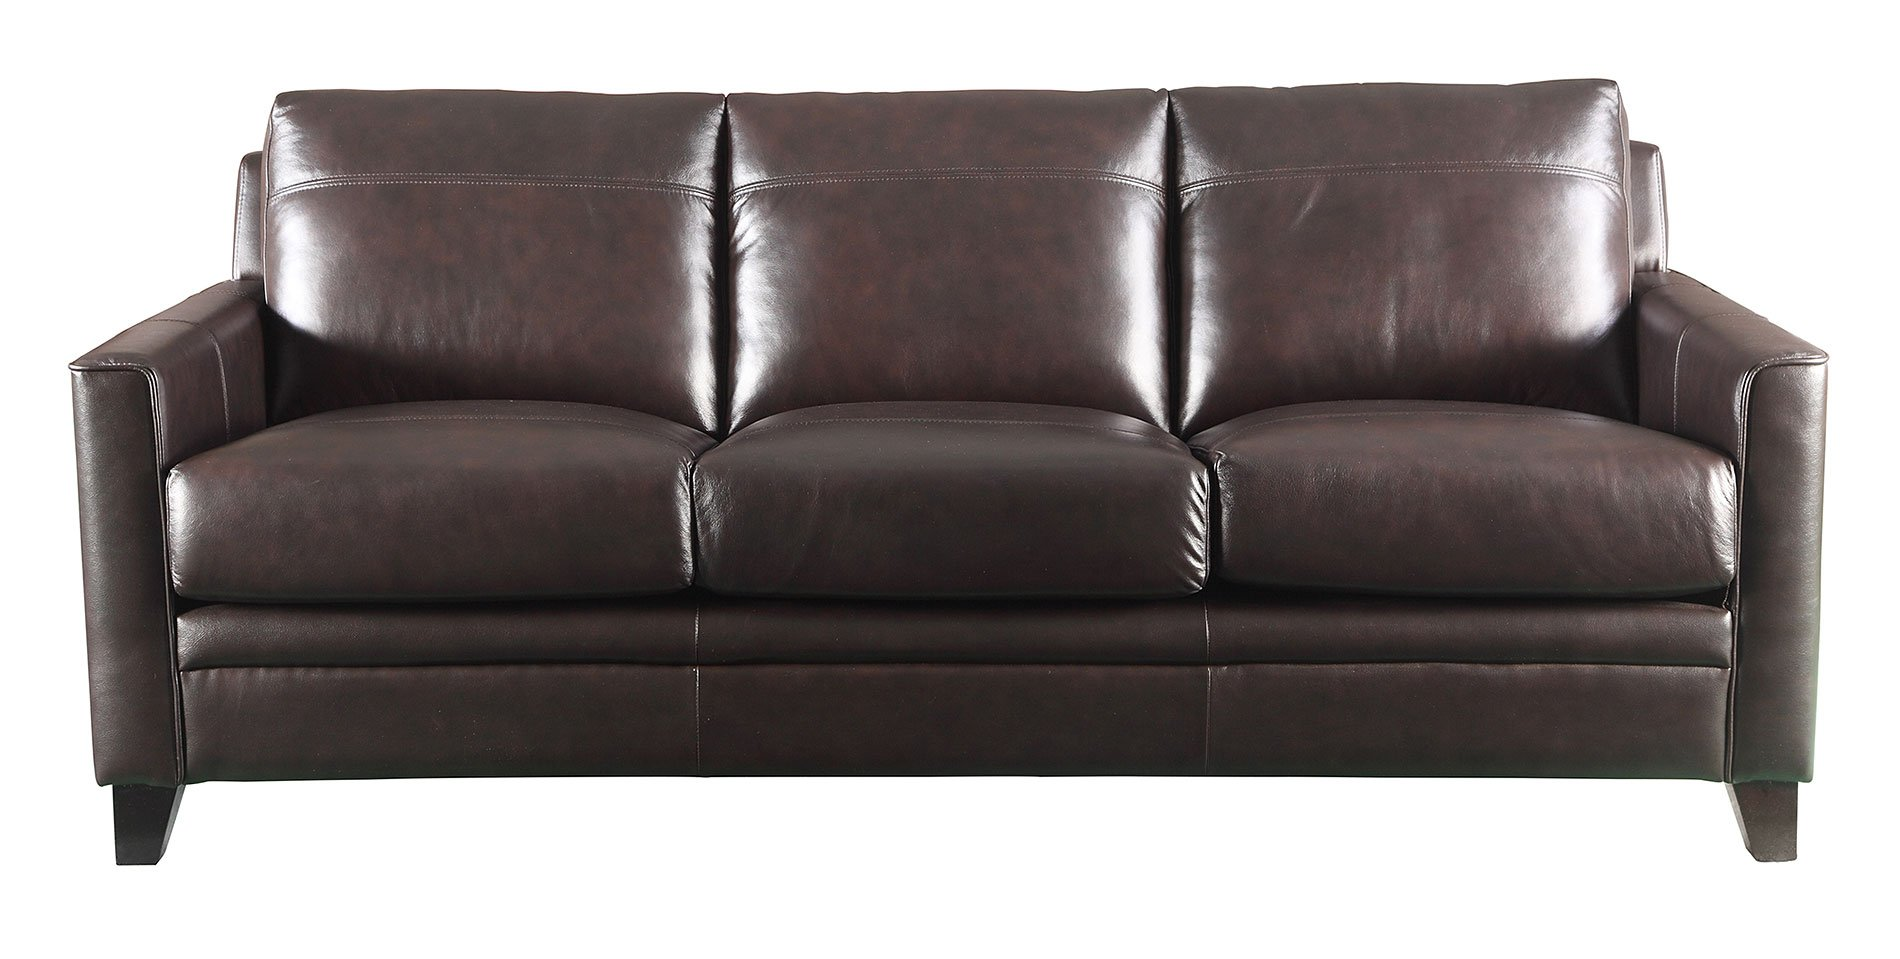 Fletcher Leather Sofa (Brown) by Leather Italia | FurniturePick